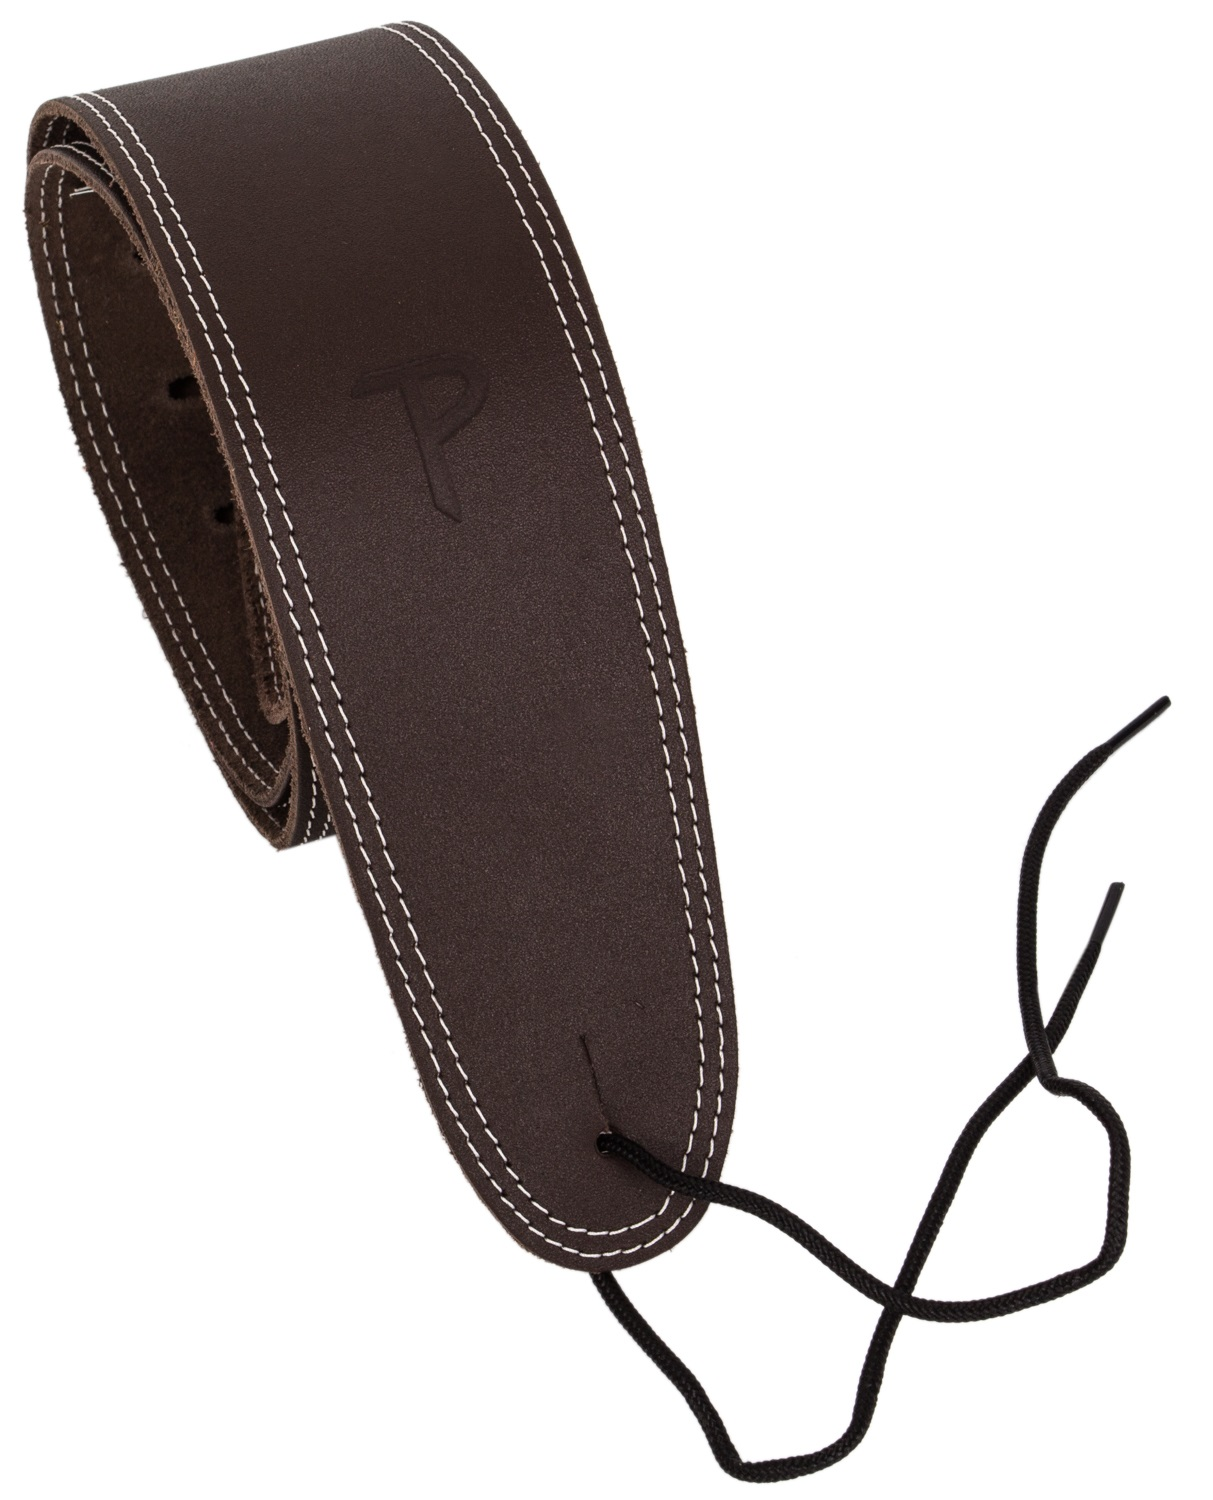 Perri's Leathers 174 Double Stitched Leather Brown